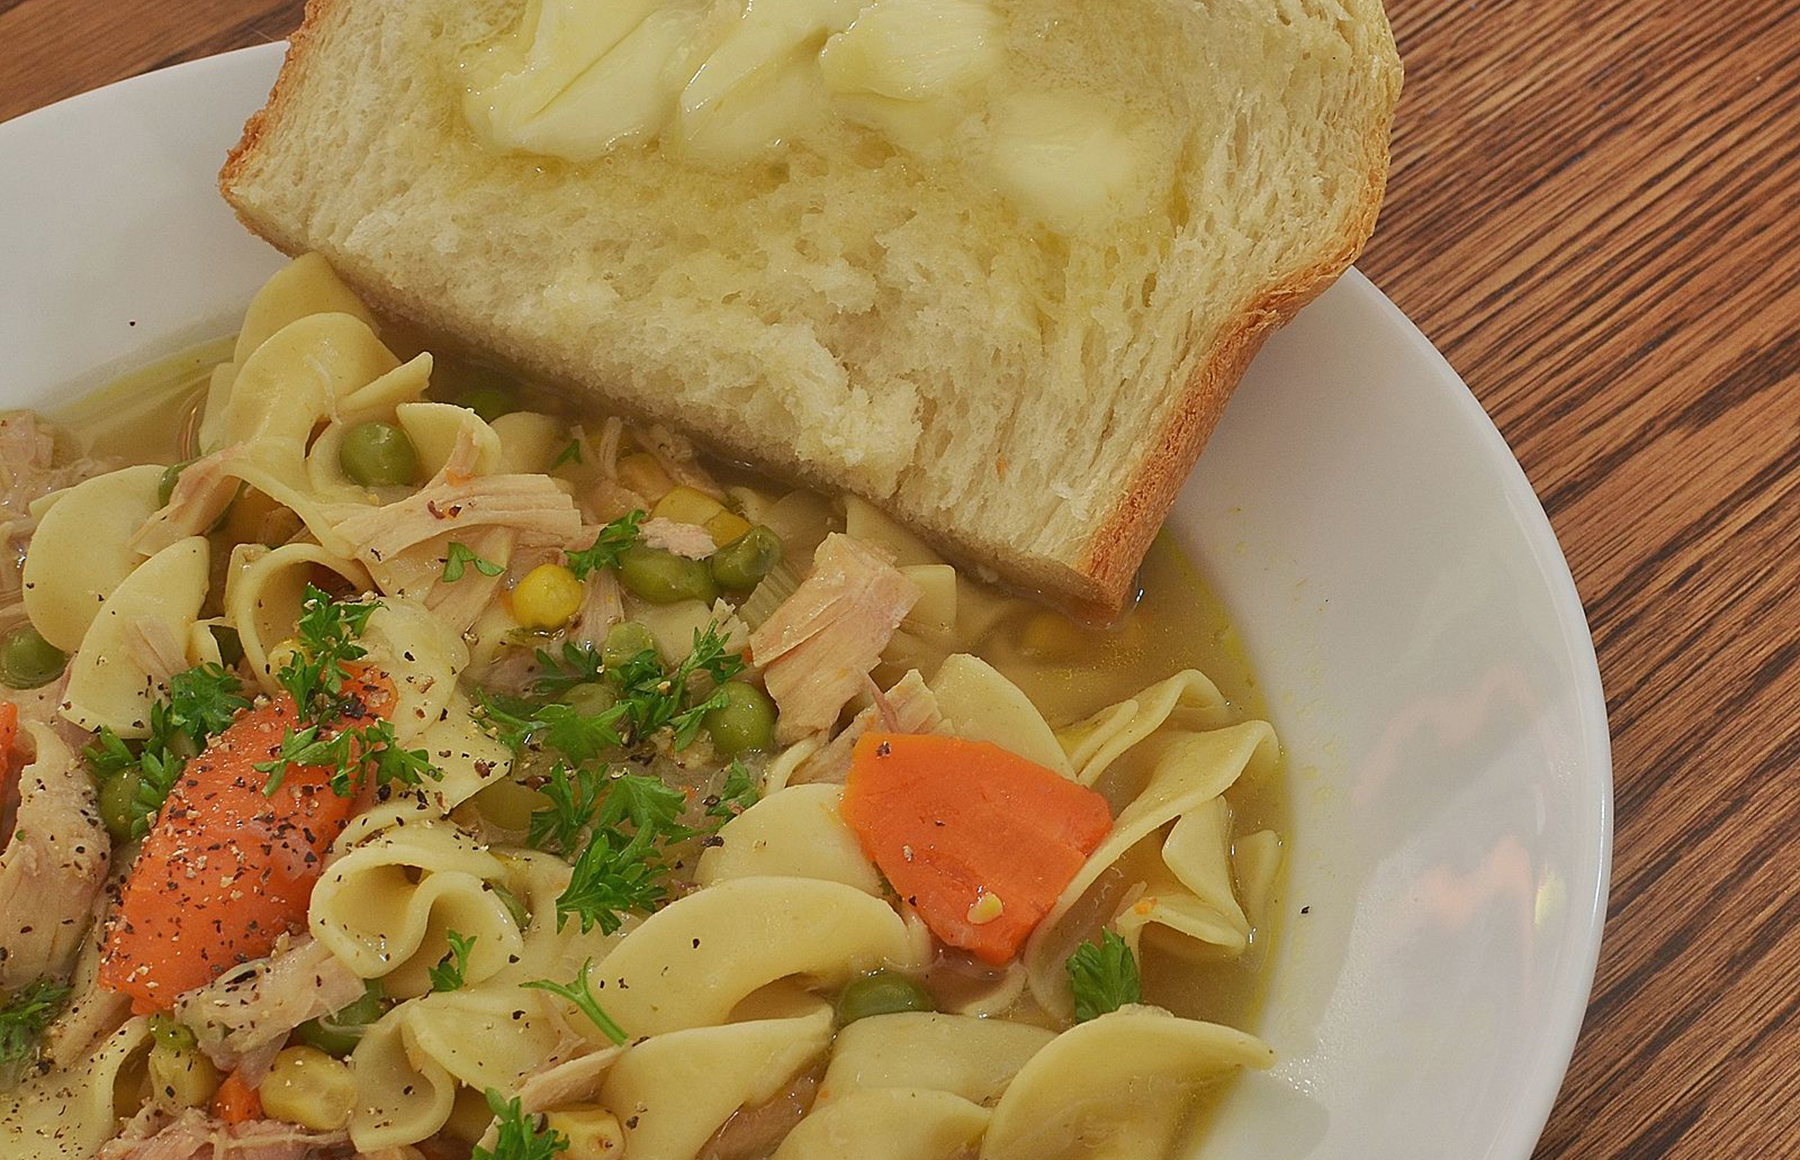 Cal cooking chronicles: Easy chicken noodle soup recipe